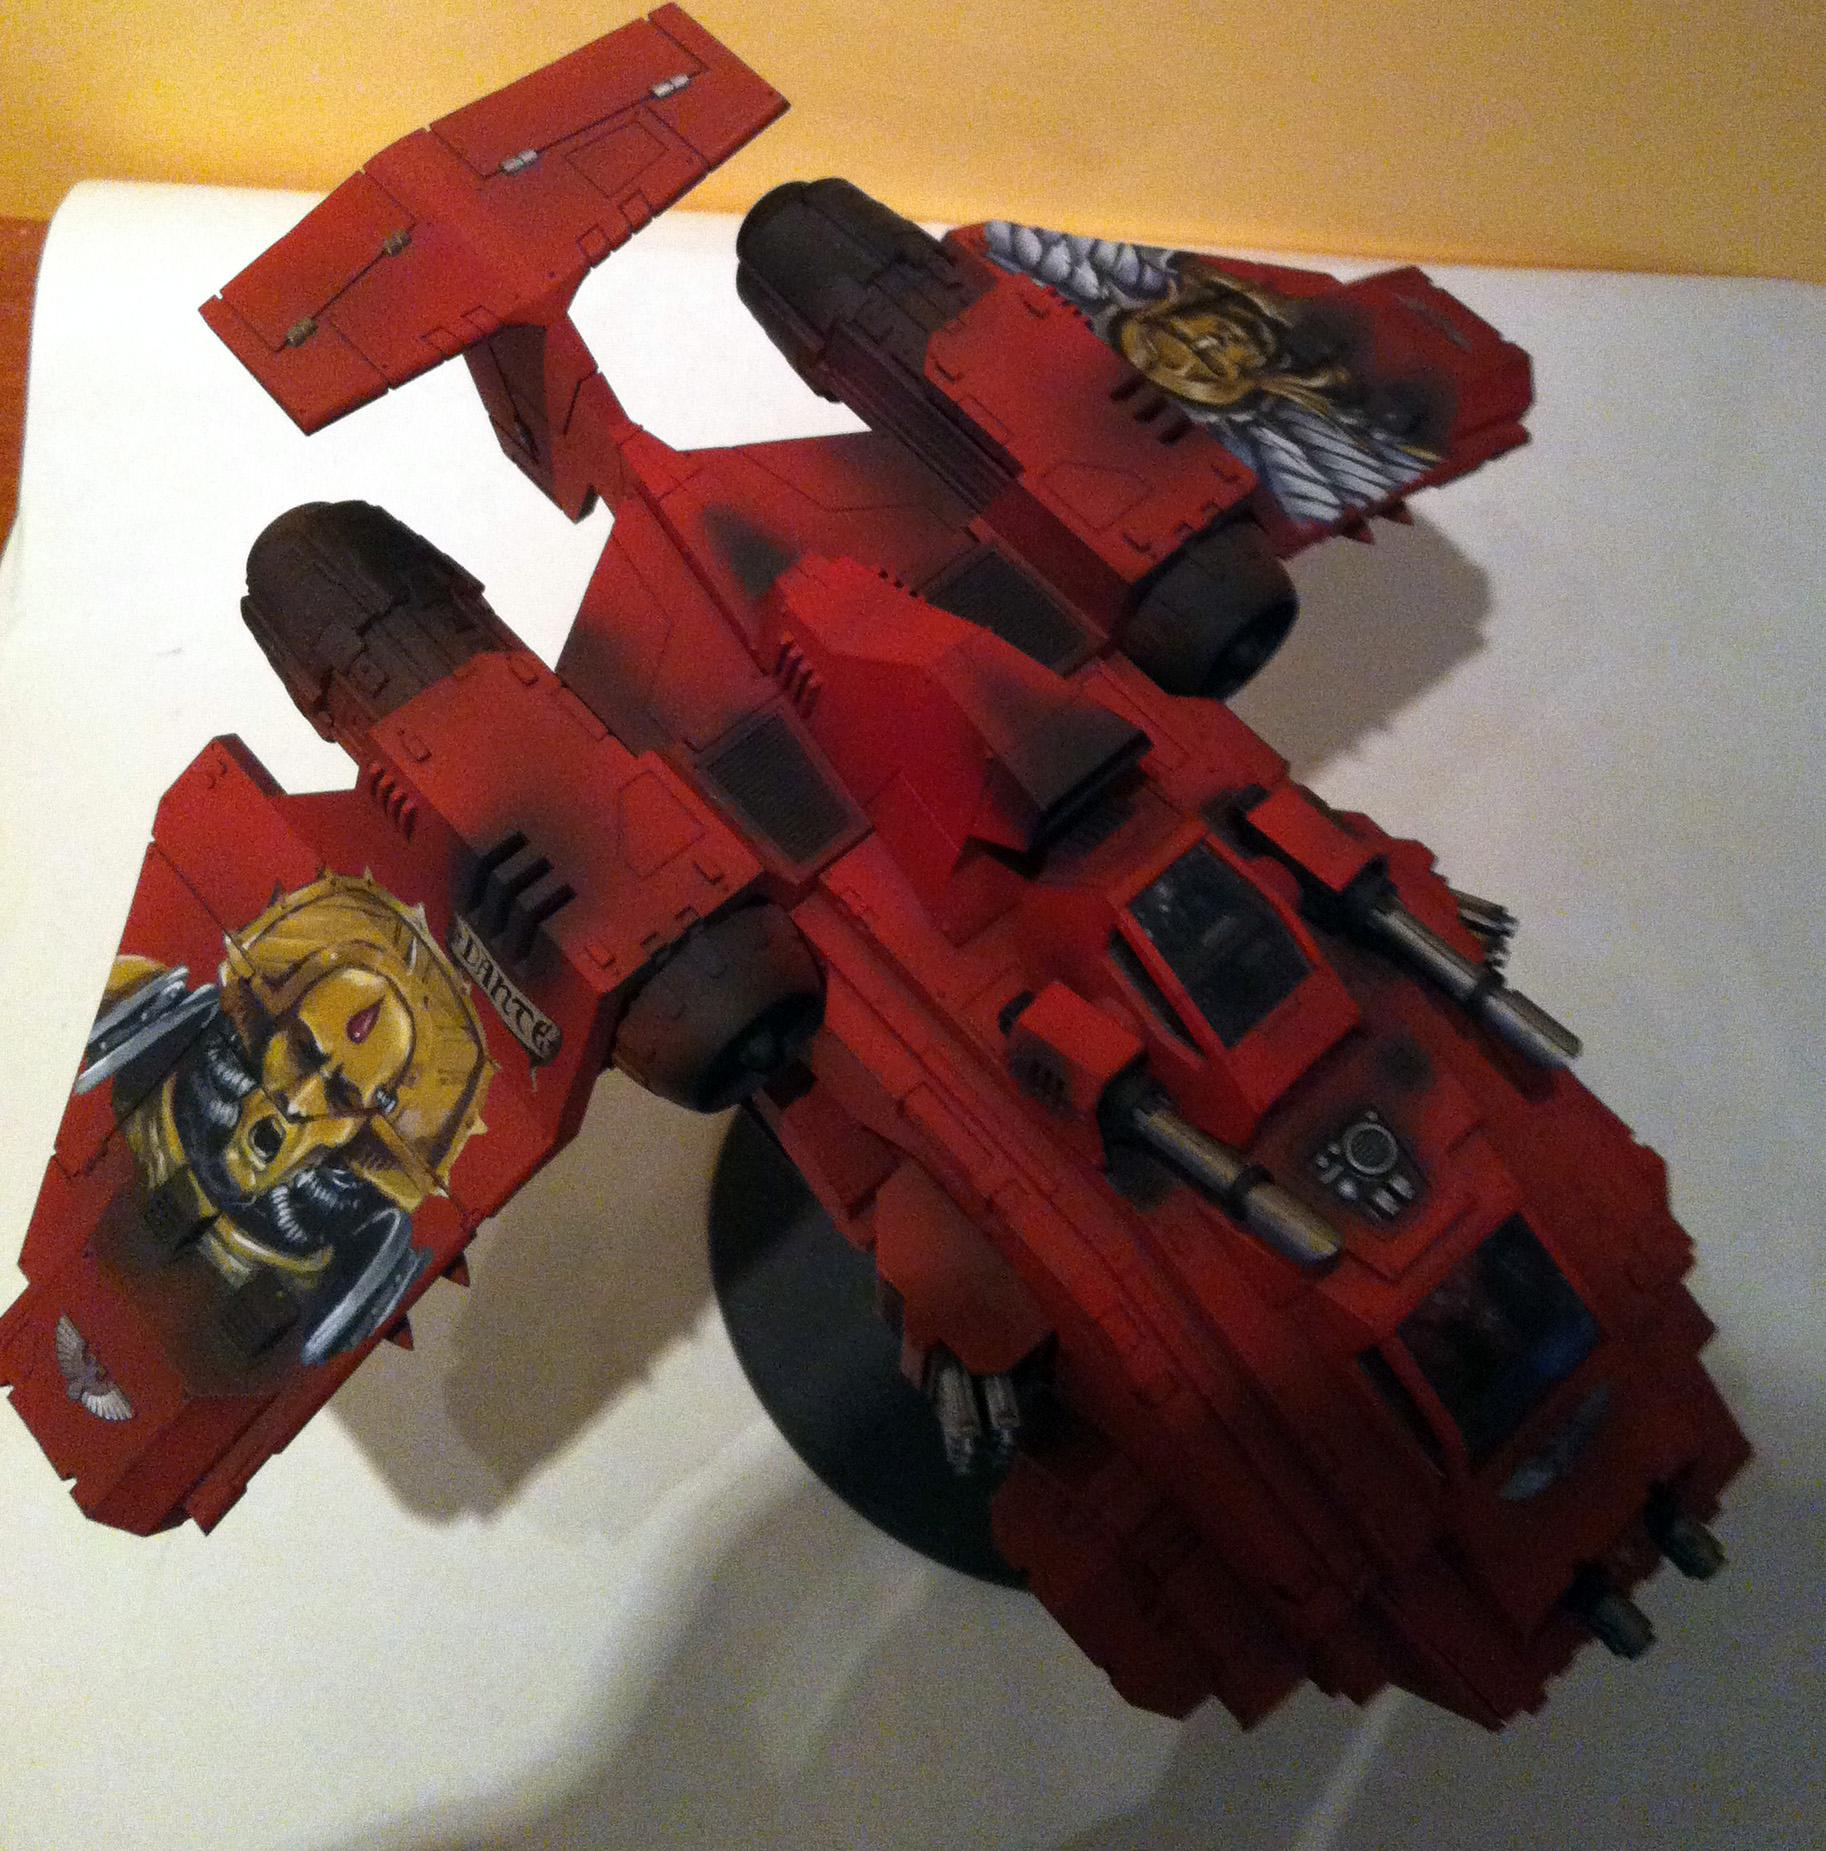 Blood Angels, Space Marines, Warhammer 40 K